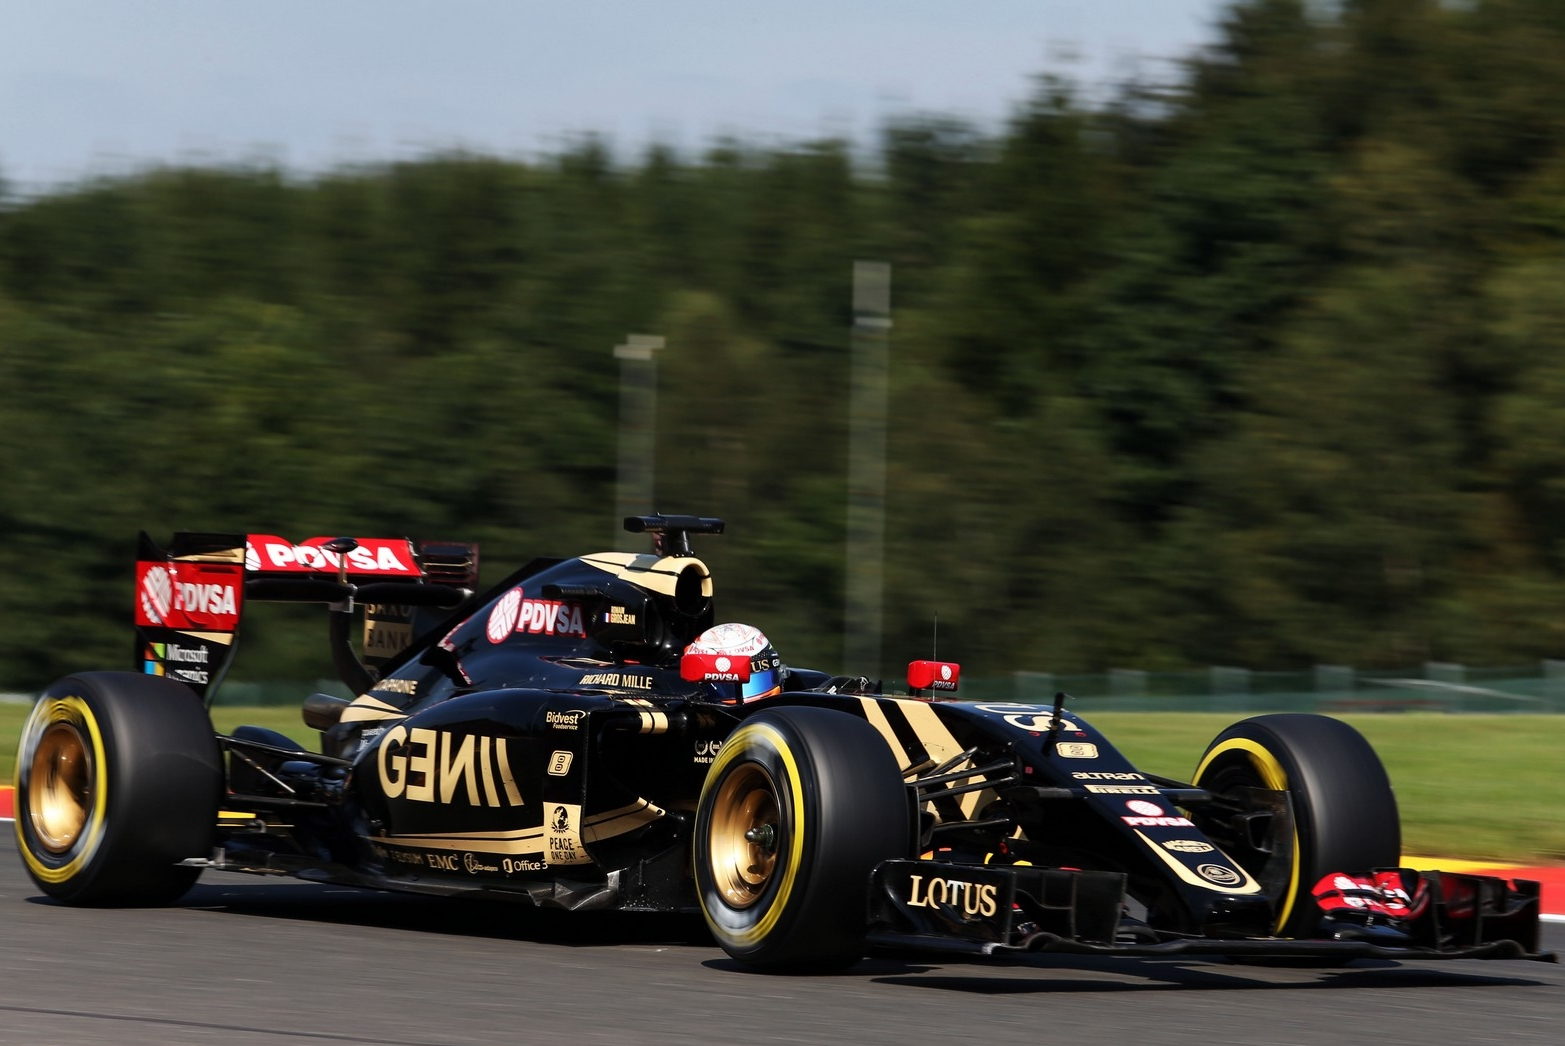 grosjean-lotus-belgium-gp-spa-f1-2015